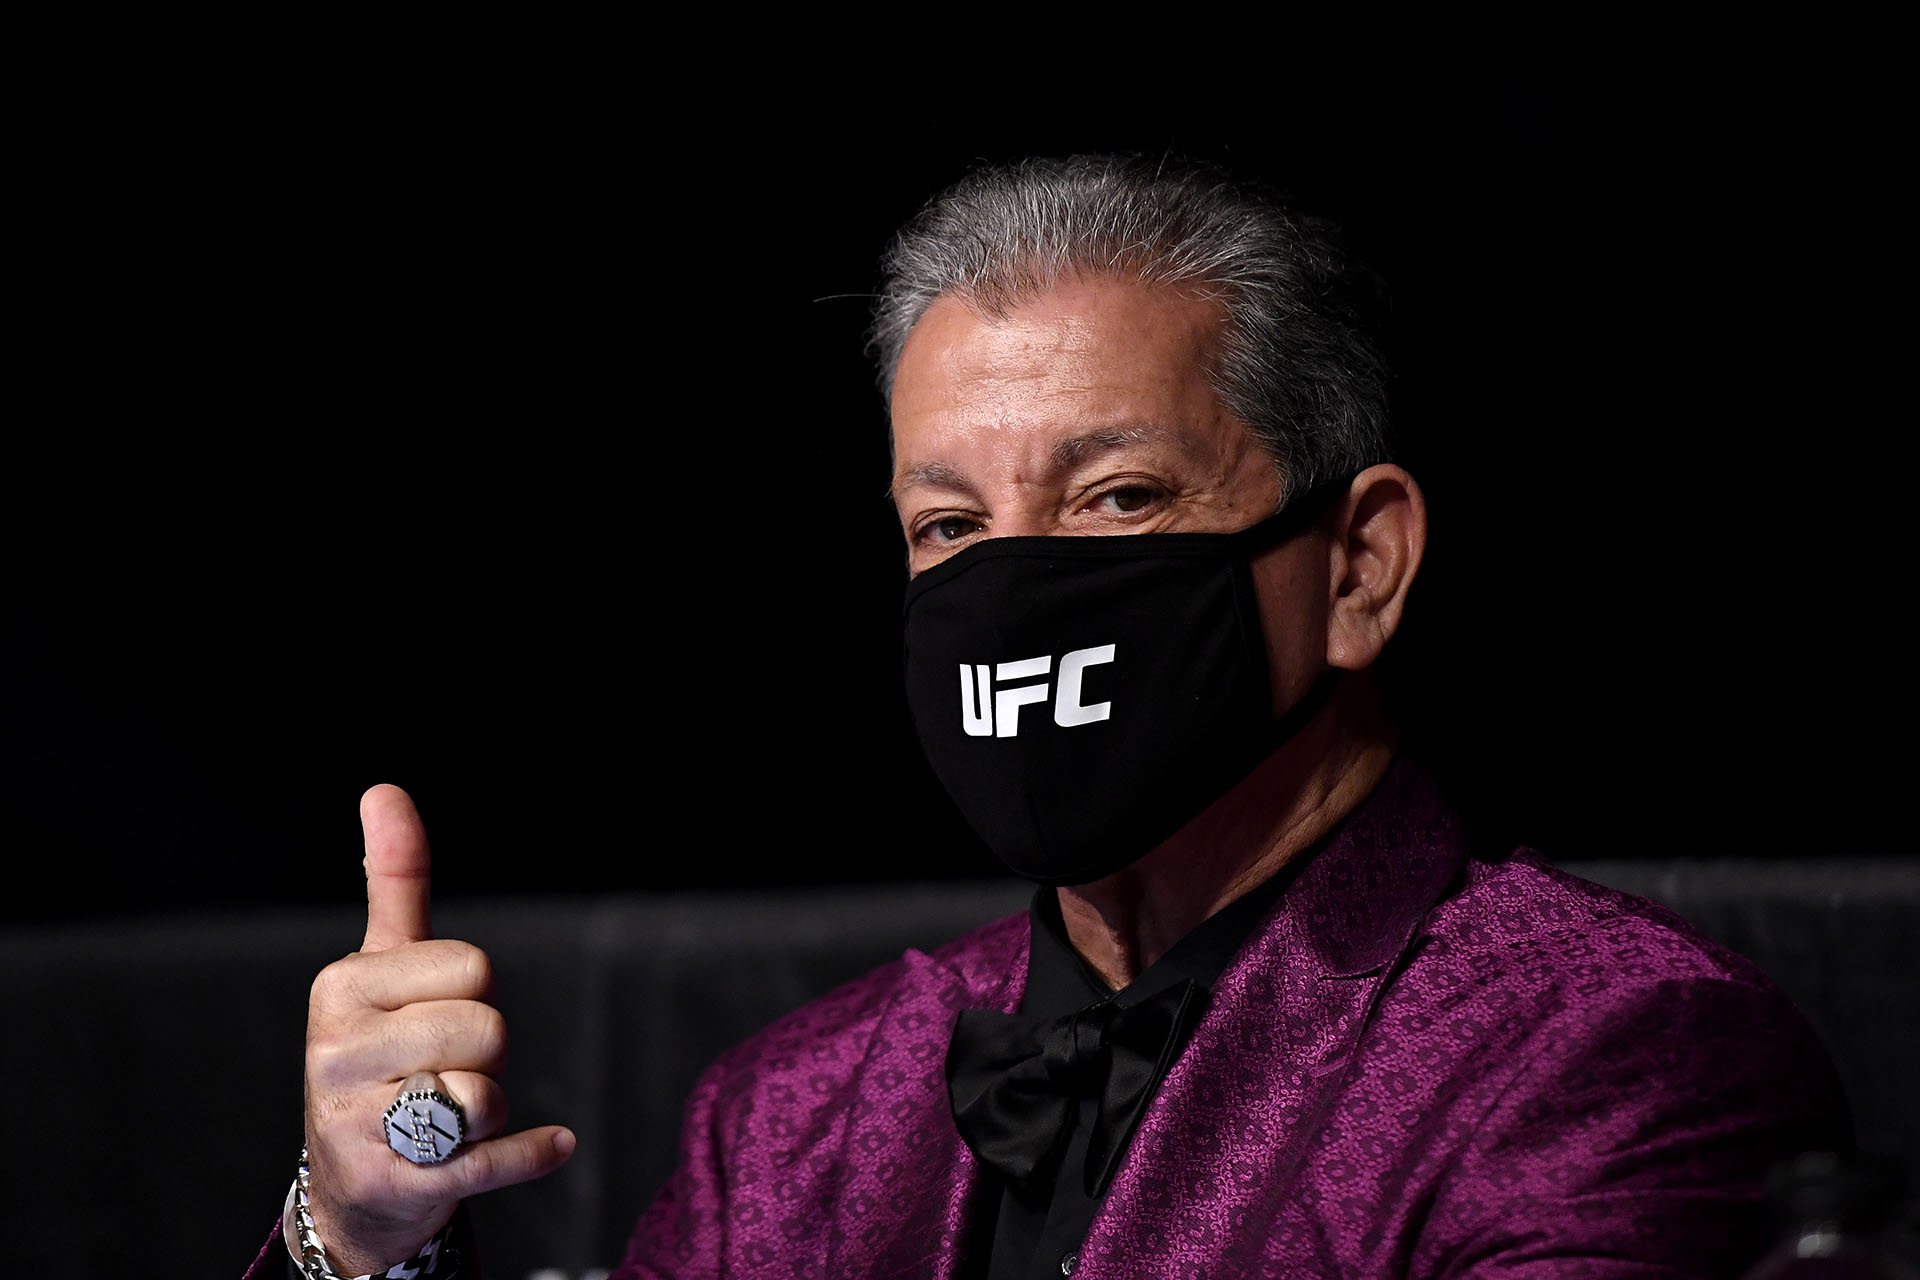 UFC Announcer Bruce Buffer poses with a protective face mask during UFC Fight Night at VyStar Veterans Memorial Arena on May 16, 2020 in Jacksonville, Florida. (Photo by Douglas P. DeFelice/Getty Images)